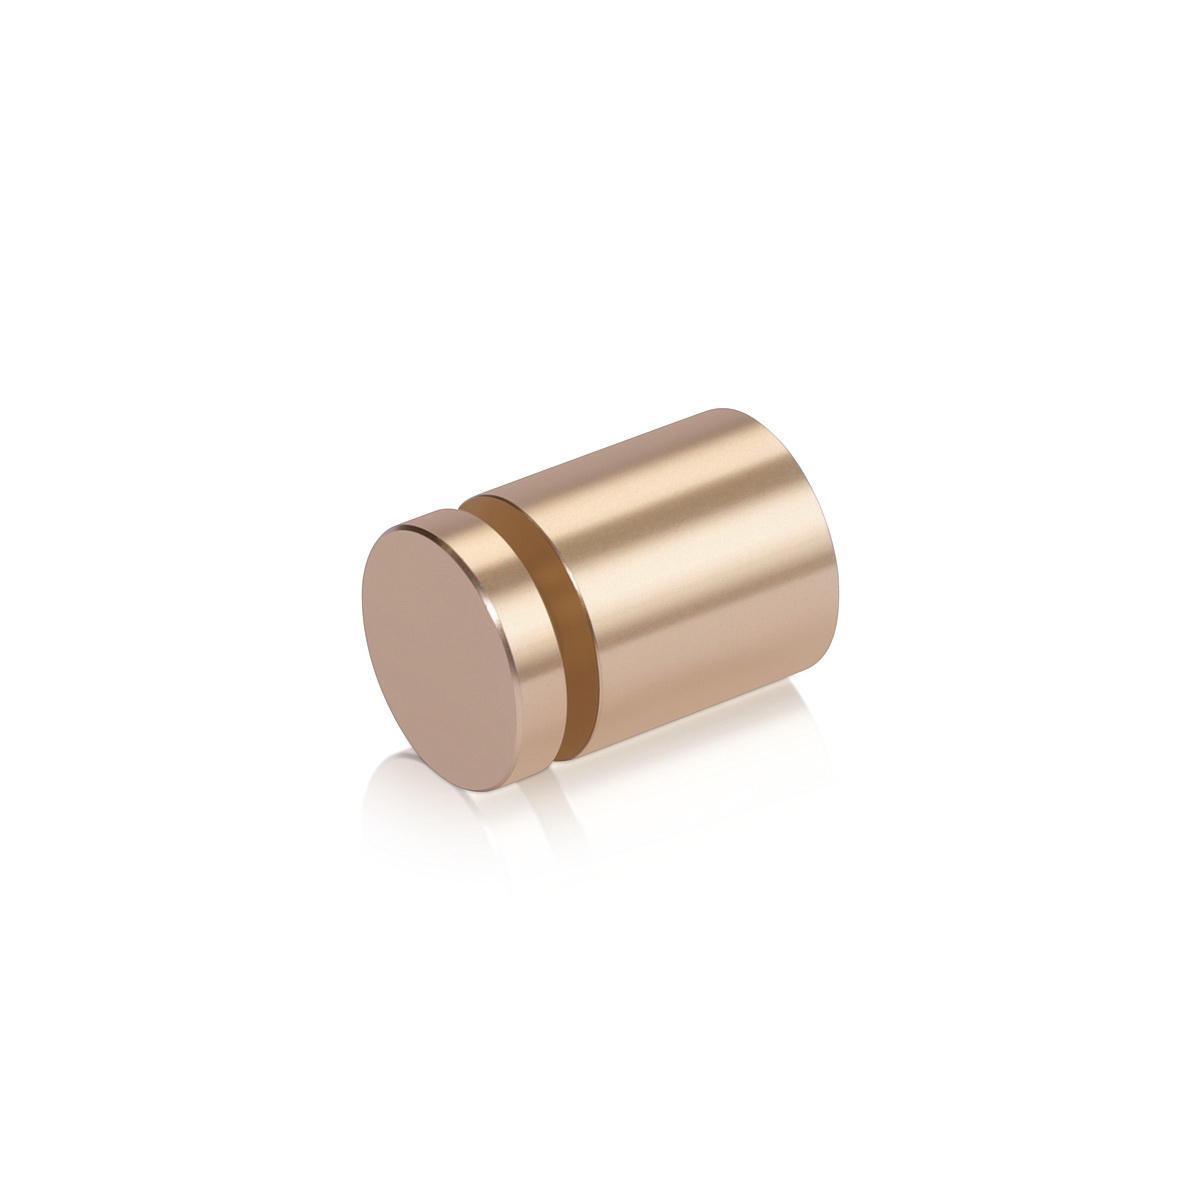 Affordable Aluminum Standoffs, Diameter: 3/4'', Standoff: 3/4'', Aluminum Champagne Finish